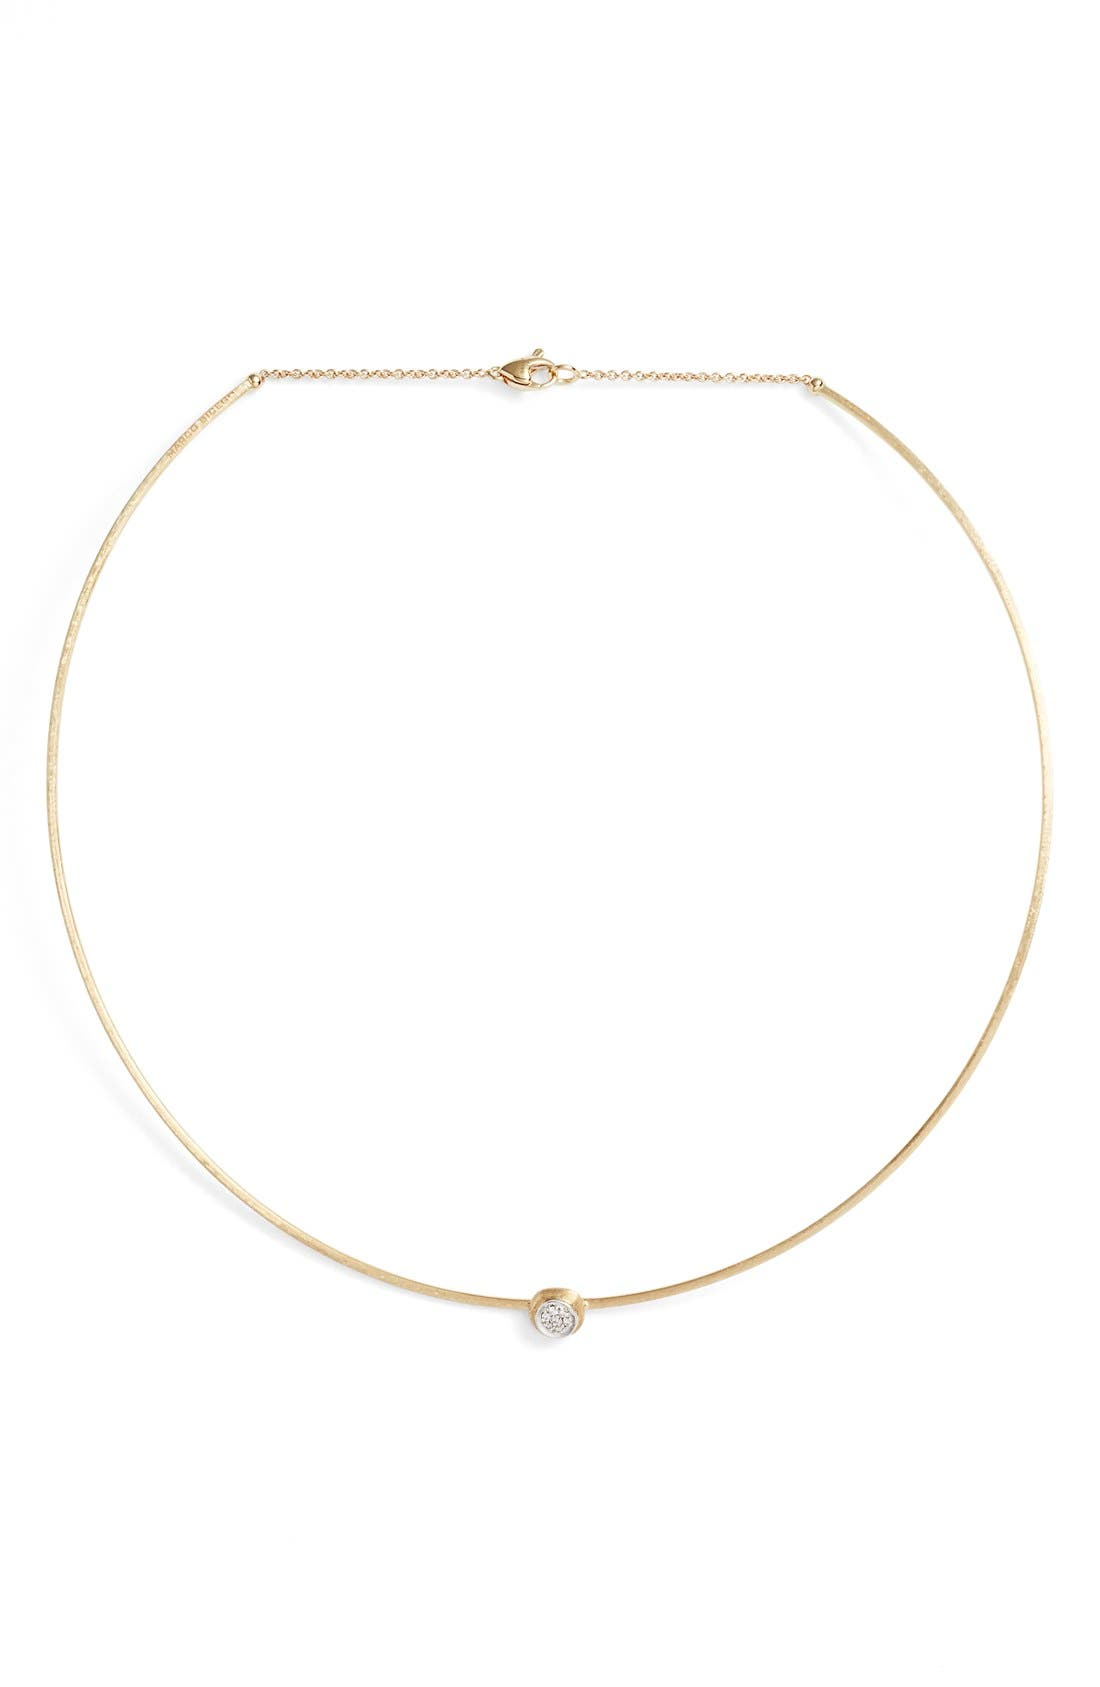 Diamond Collar Necklace,                             Main thumbnail 1, color,                             Yellow Gold